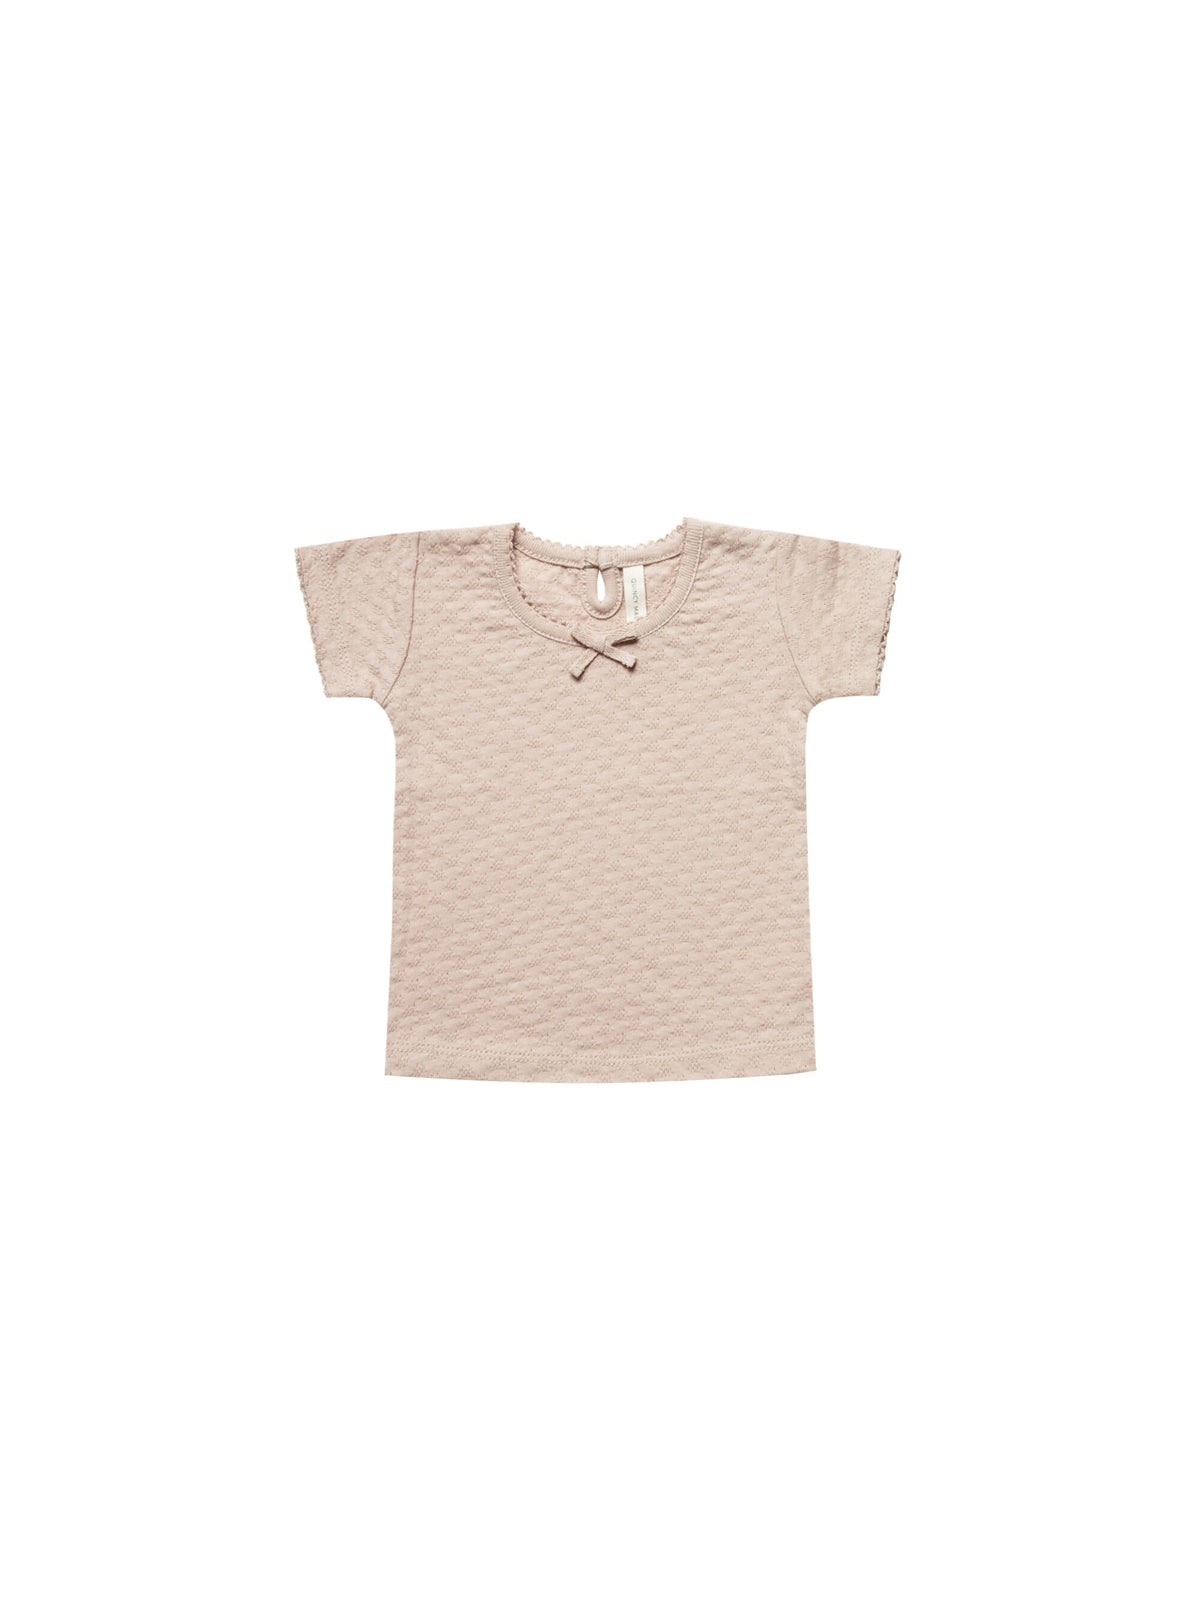 Quincy Mae Pointelle Tee in Rose | Sweet Threads